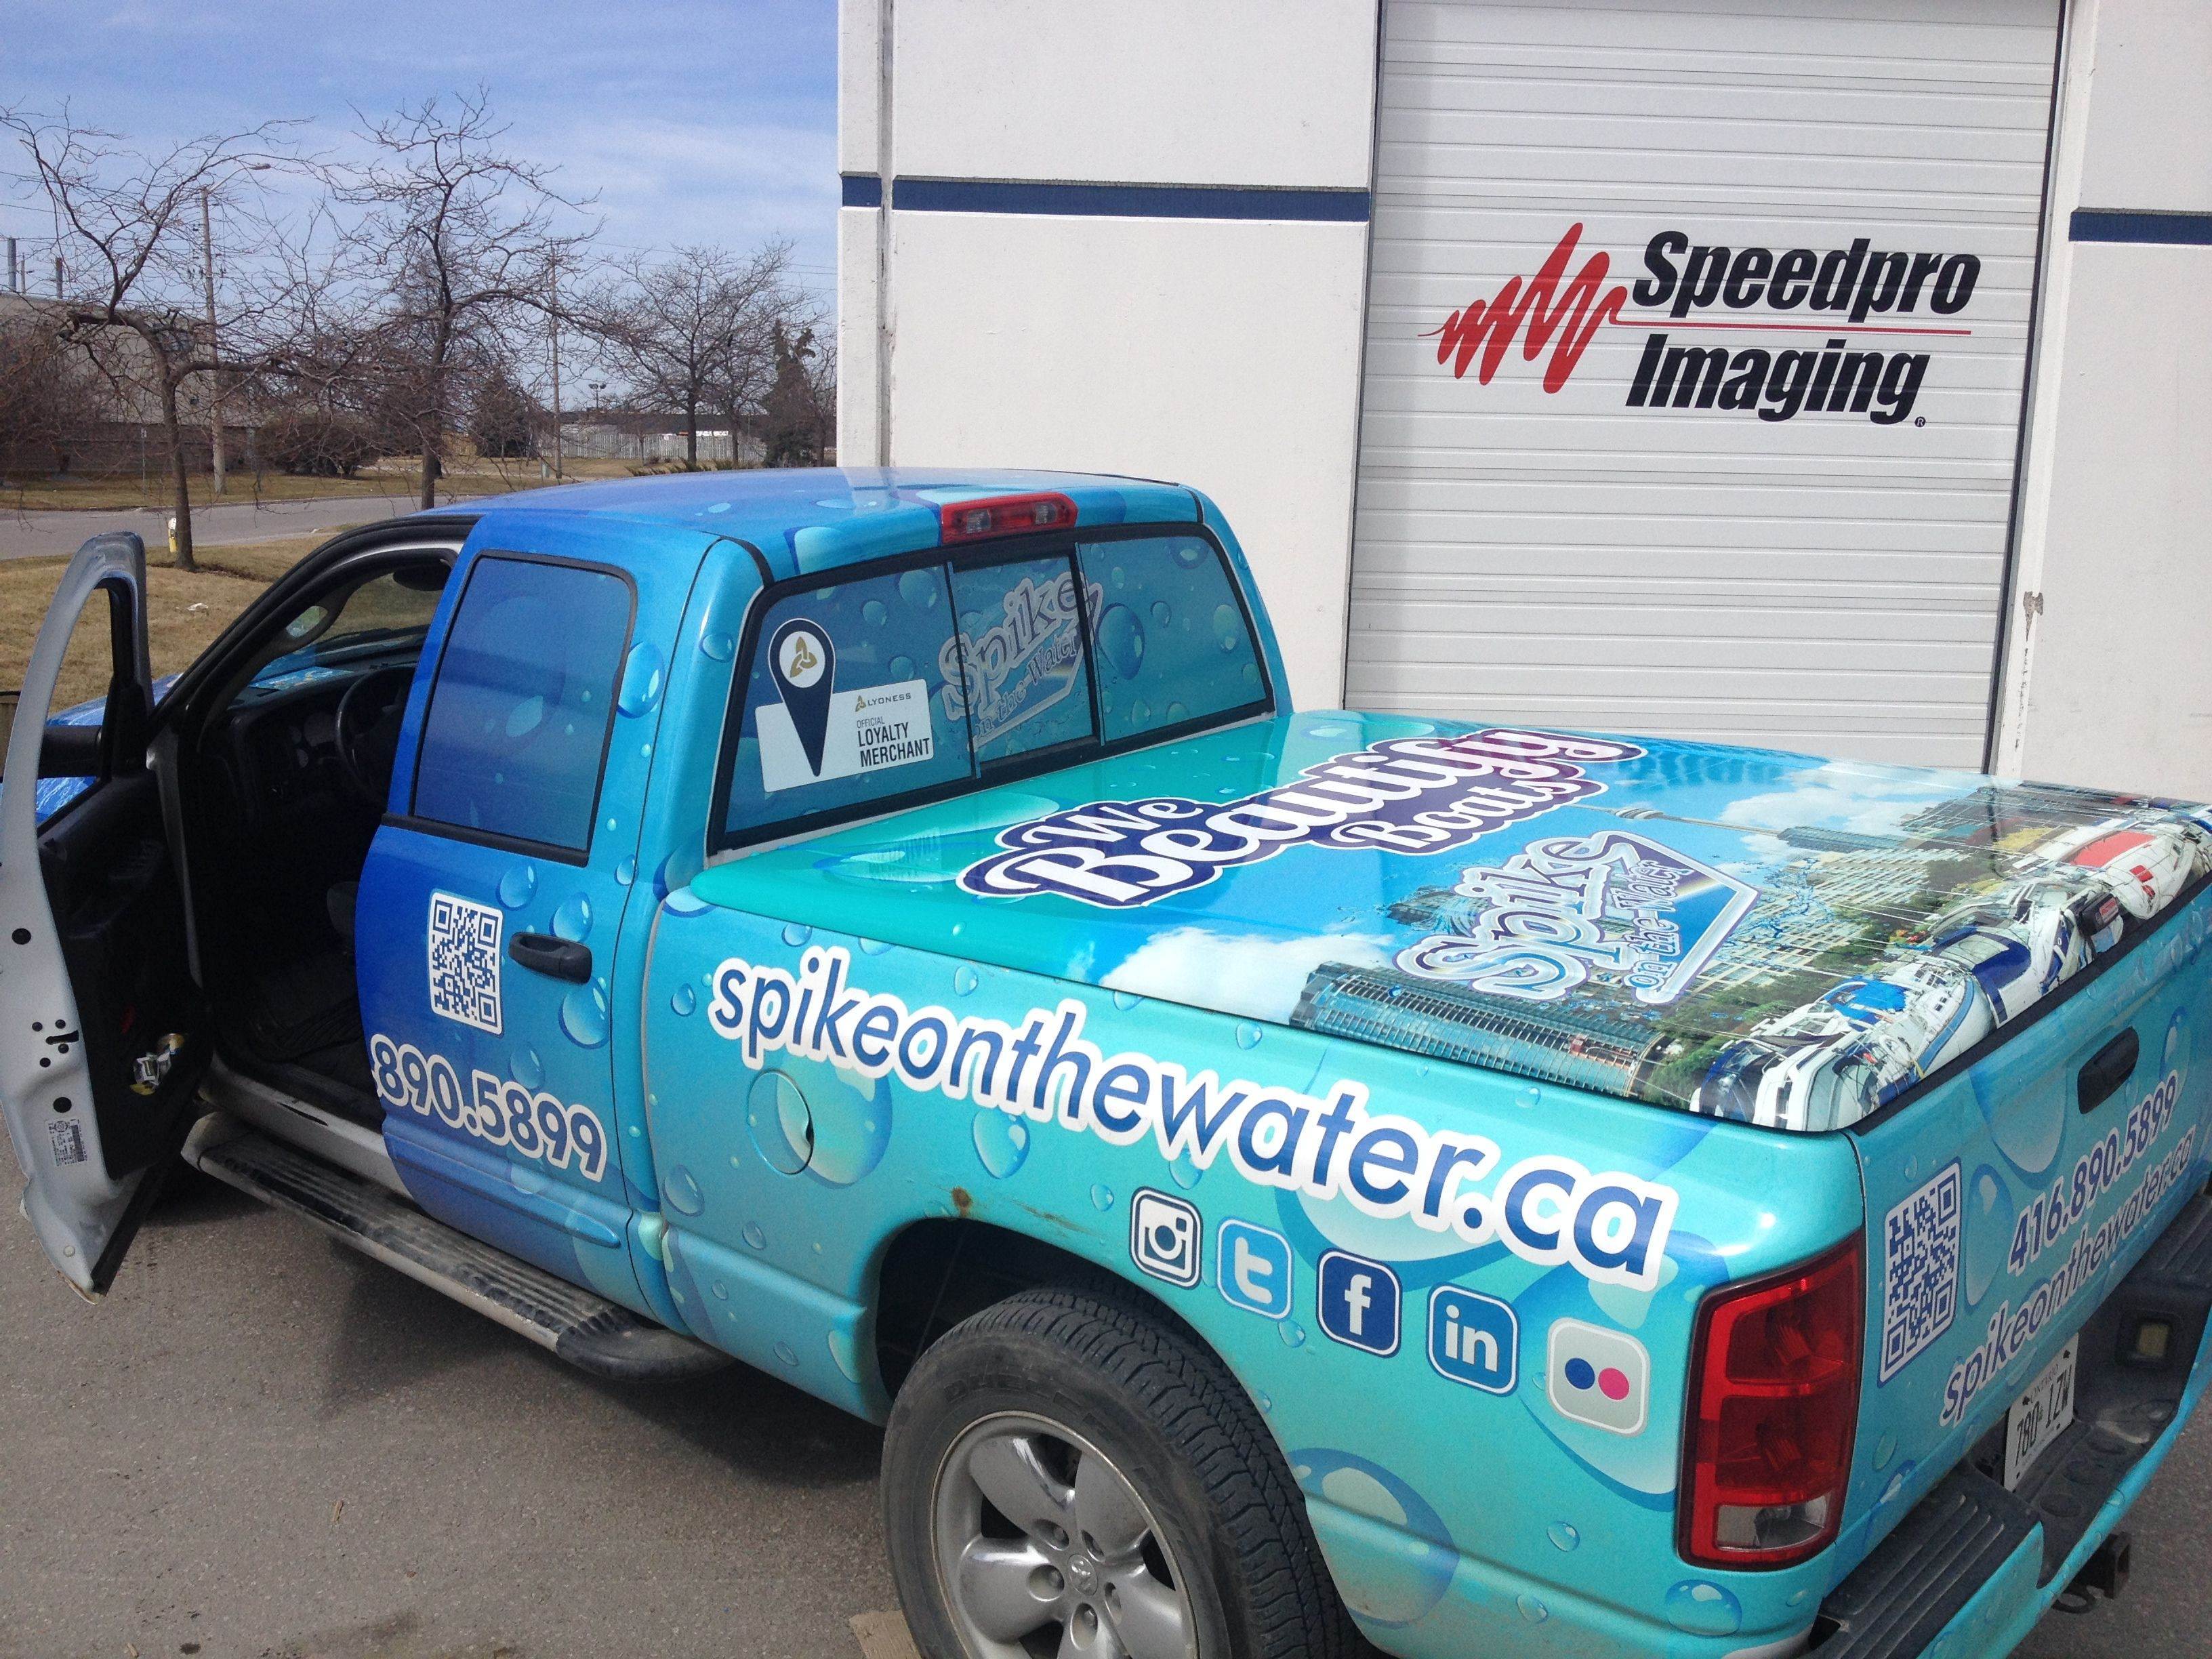 Sweeeeet digital print tonneau cover wrap completed today